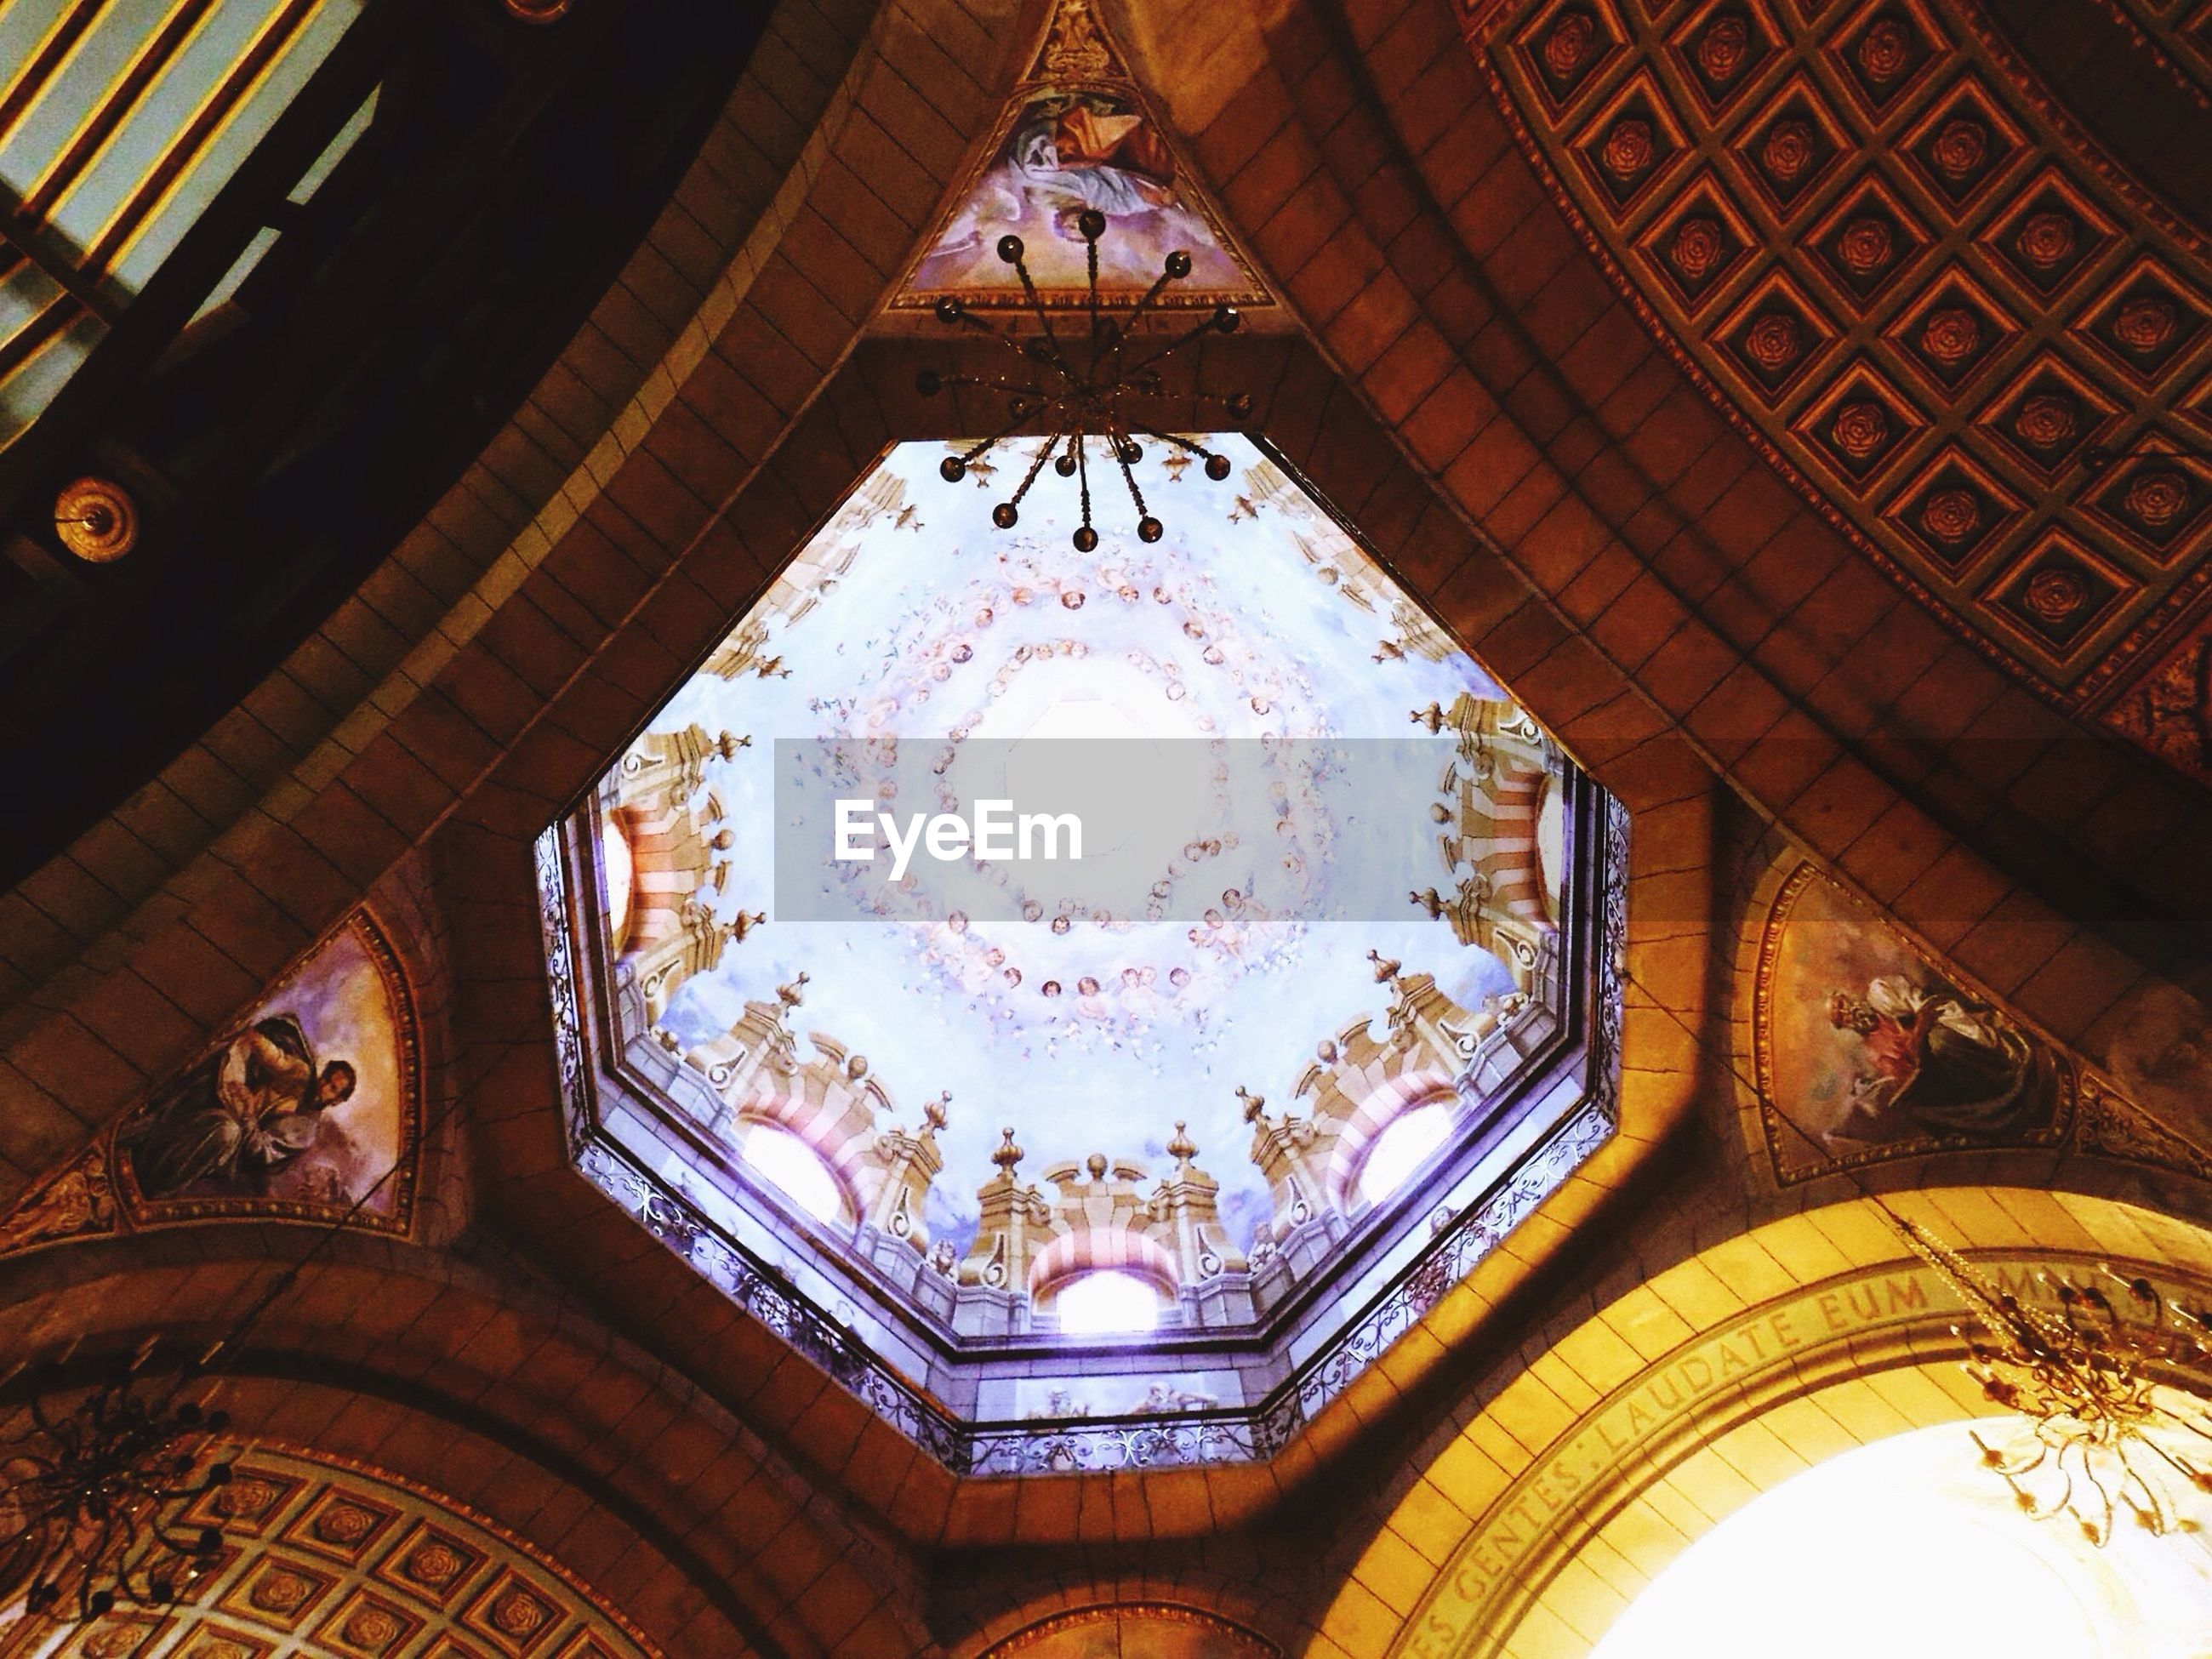 indoors, ceiling, low angle view, architecture, built structure, place of worship, religion, ornate, chandelier, spirituality, church, design, directly below, architectural feature, illuminated, pattern, cathedral, famous place